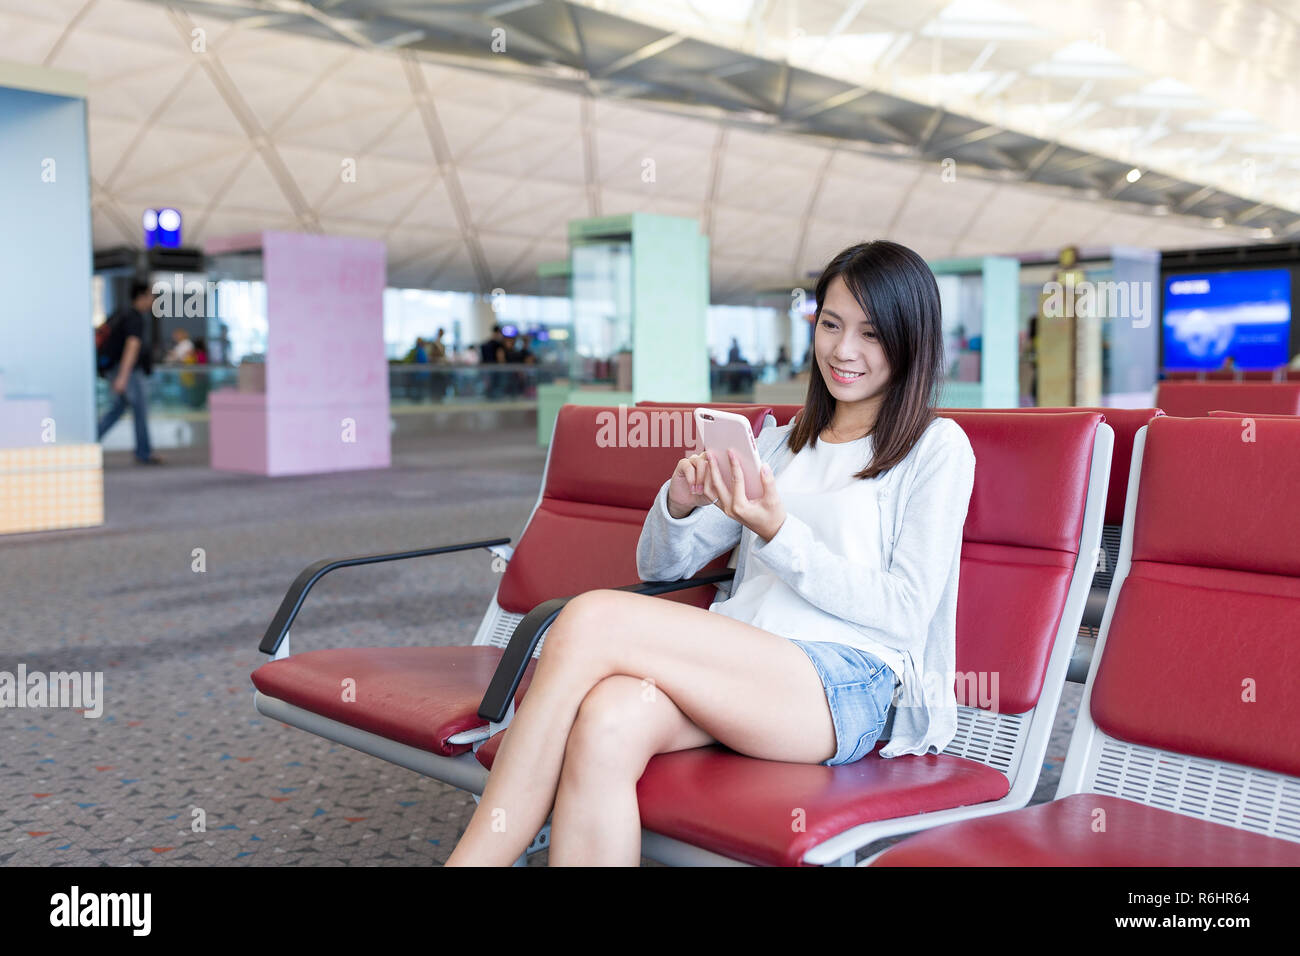 Woman using mobile phone in the airport - Stock Image